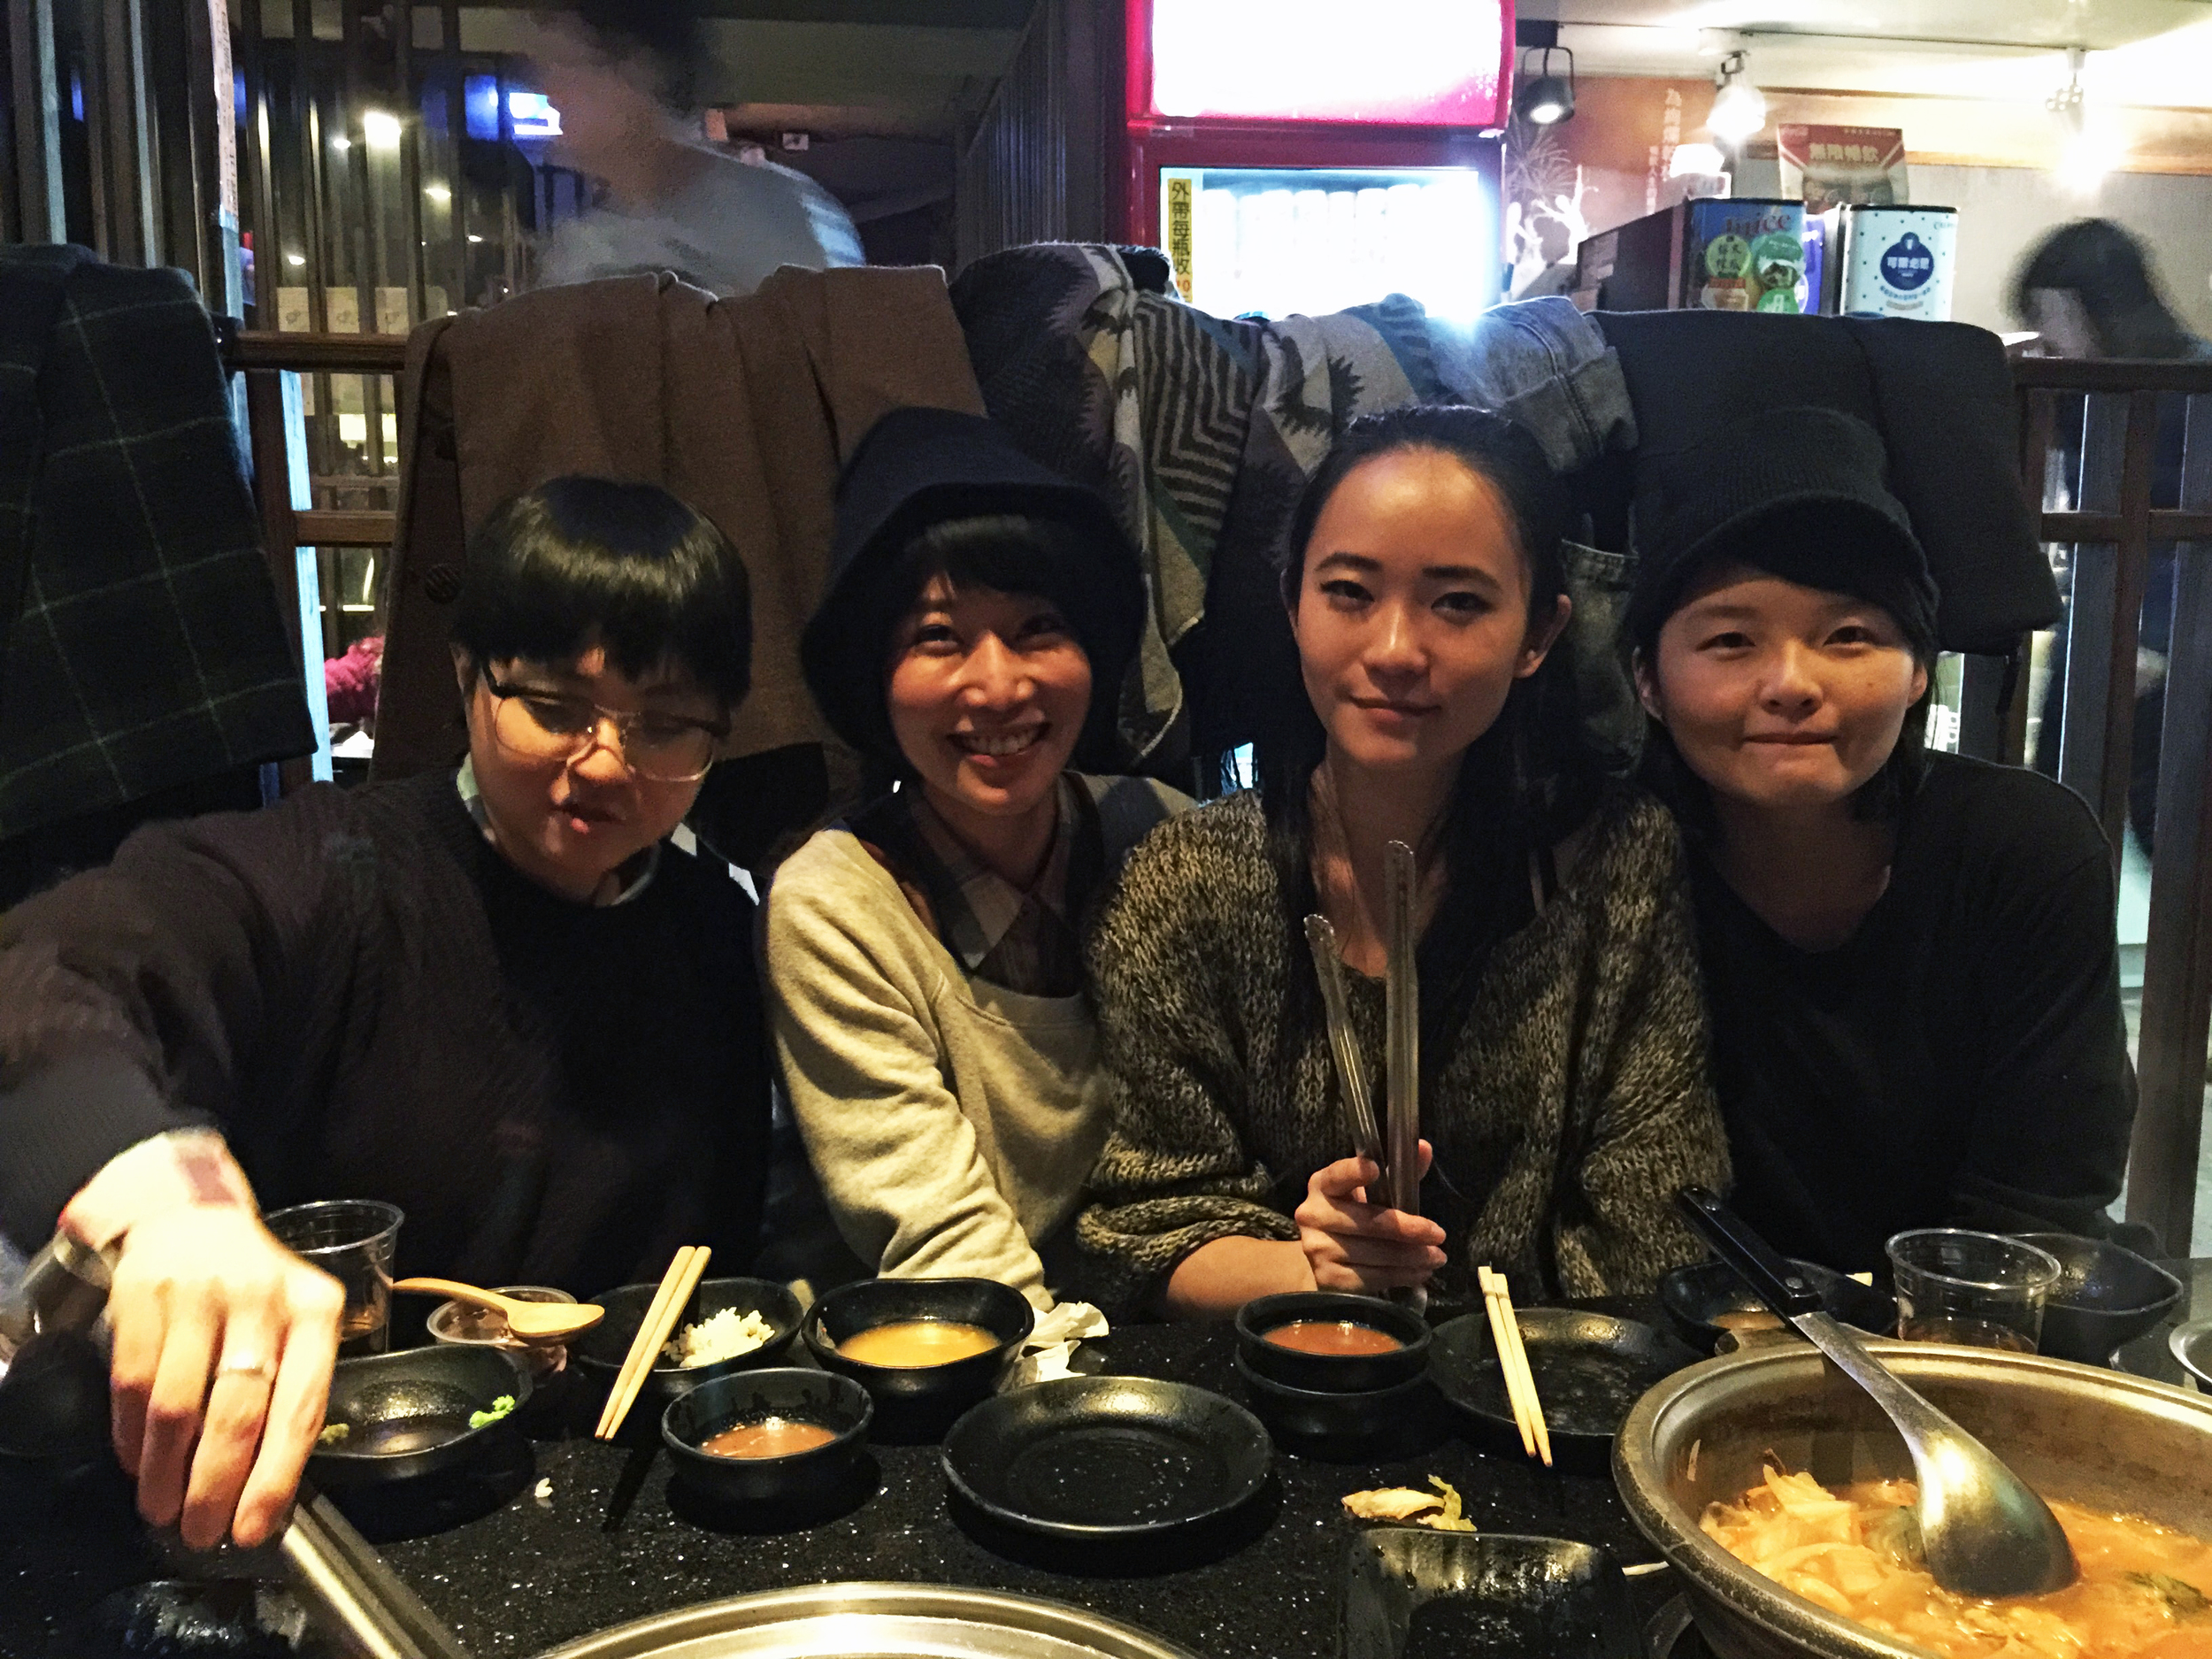 three-little-birds-hostel-guesthouse-taipei-taiwan-warm-welcome-tourist-backpackers-tourism-January-memo-year-end-dinner-gathering